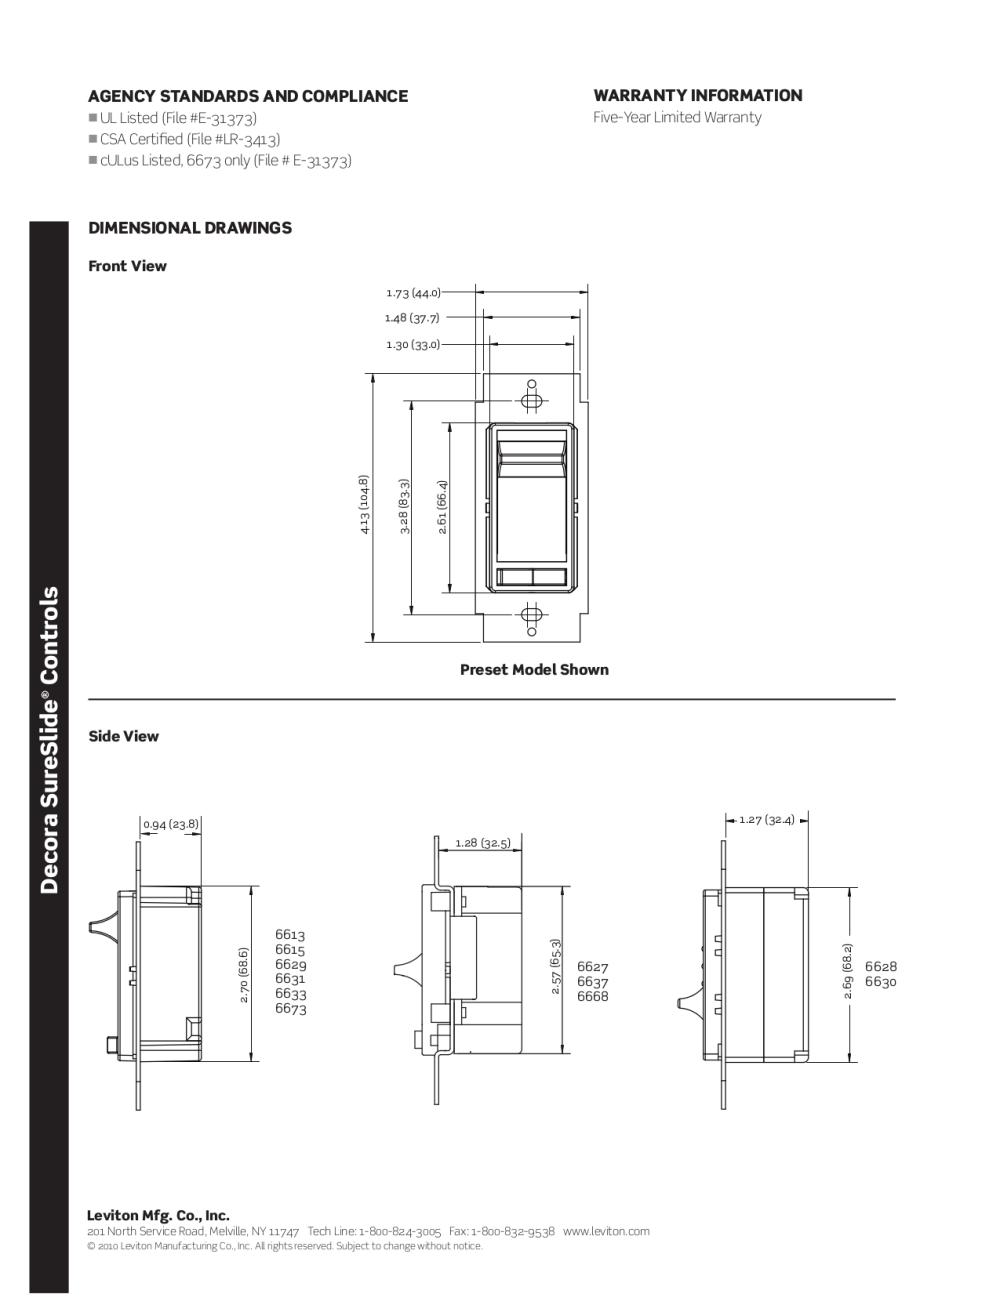 medium resolution of leviton 6633 p wiring diagram detailed schematics diagram leviton dimmers wiring diagrams leviton 6683 installation manual